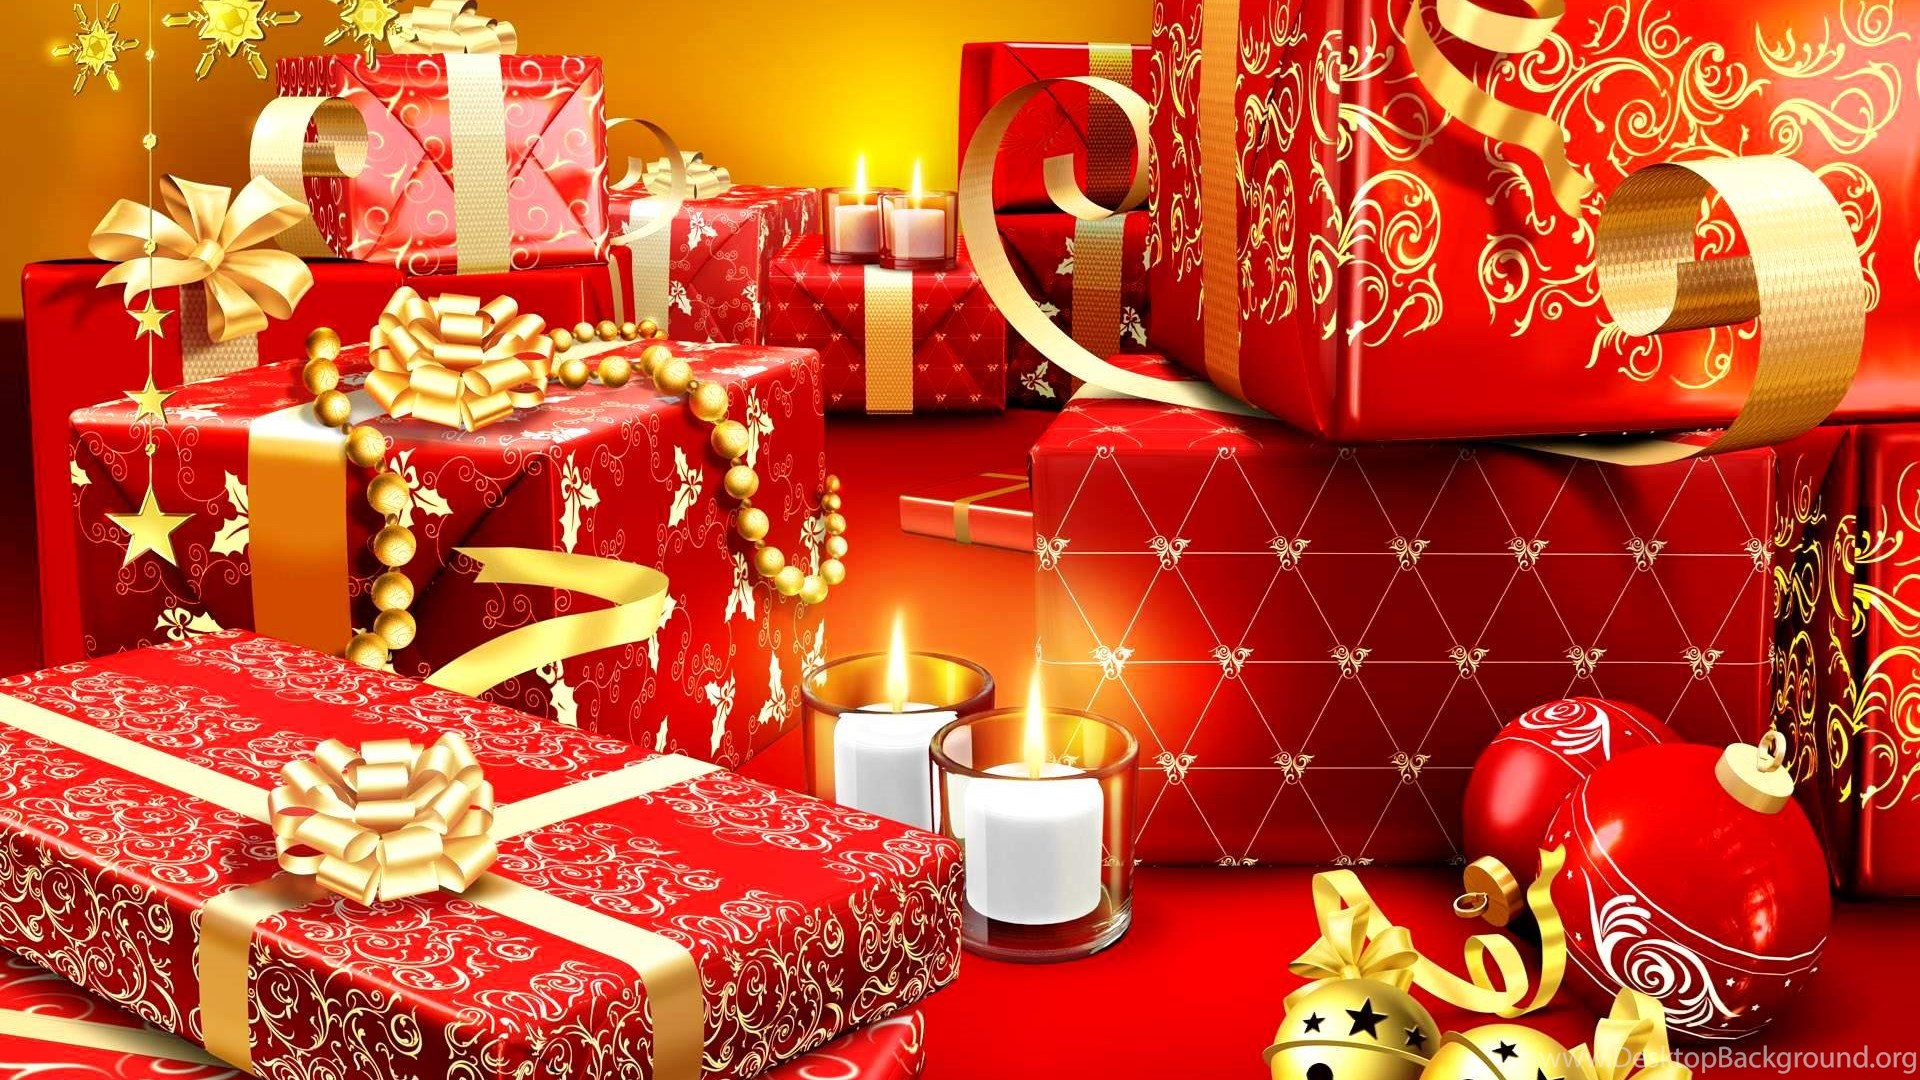 311693 easy steps to find animated christmas wallpapers free